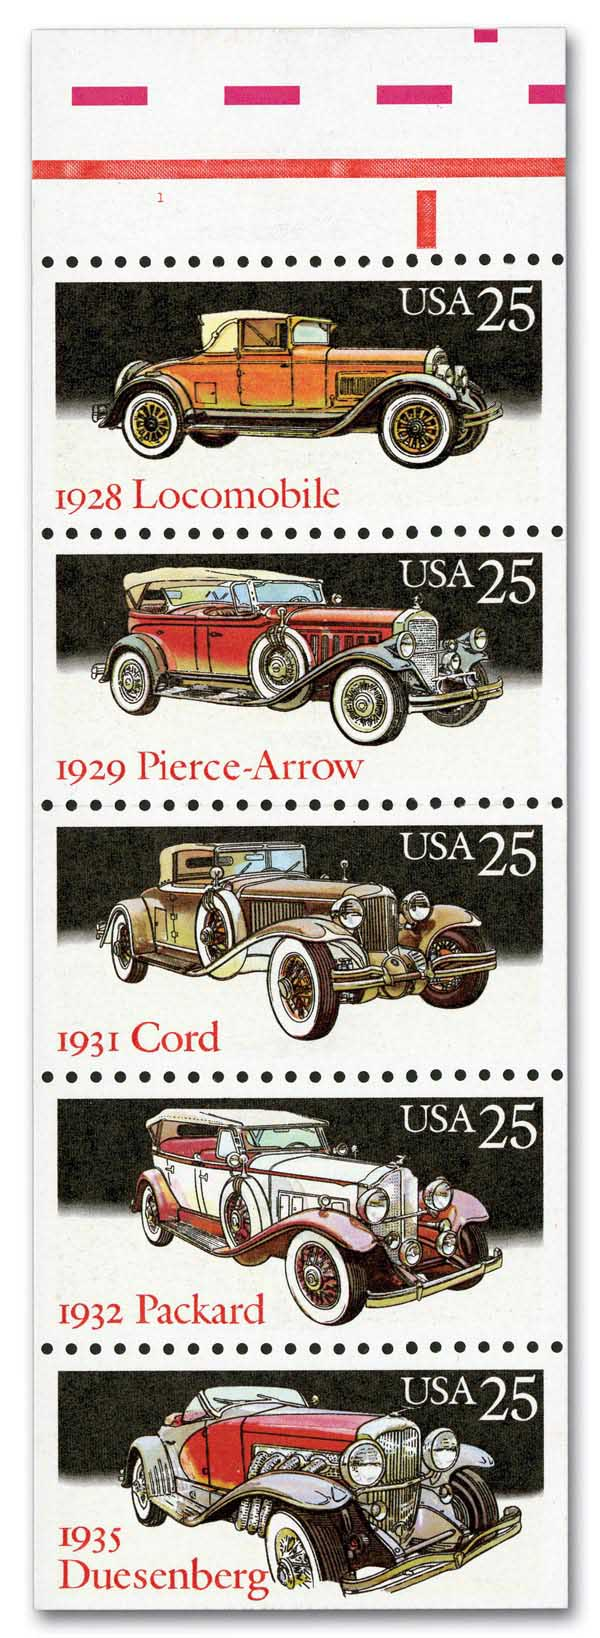 1988 25c Classic Cars, booklet pane of 5 stamps